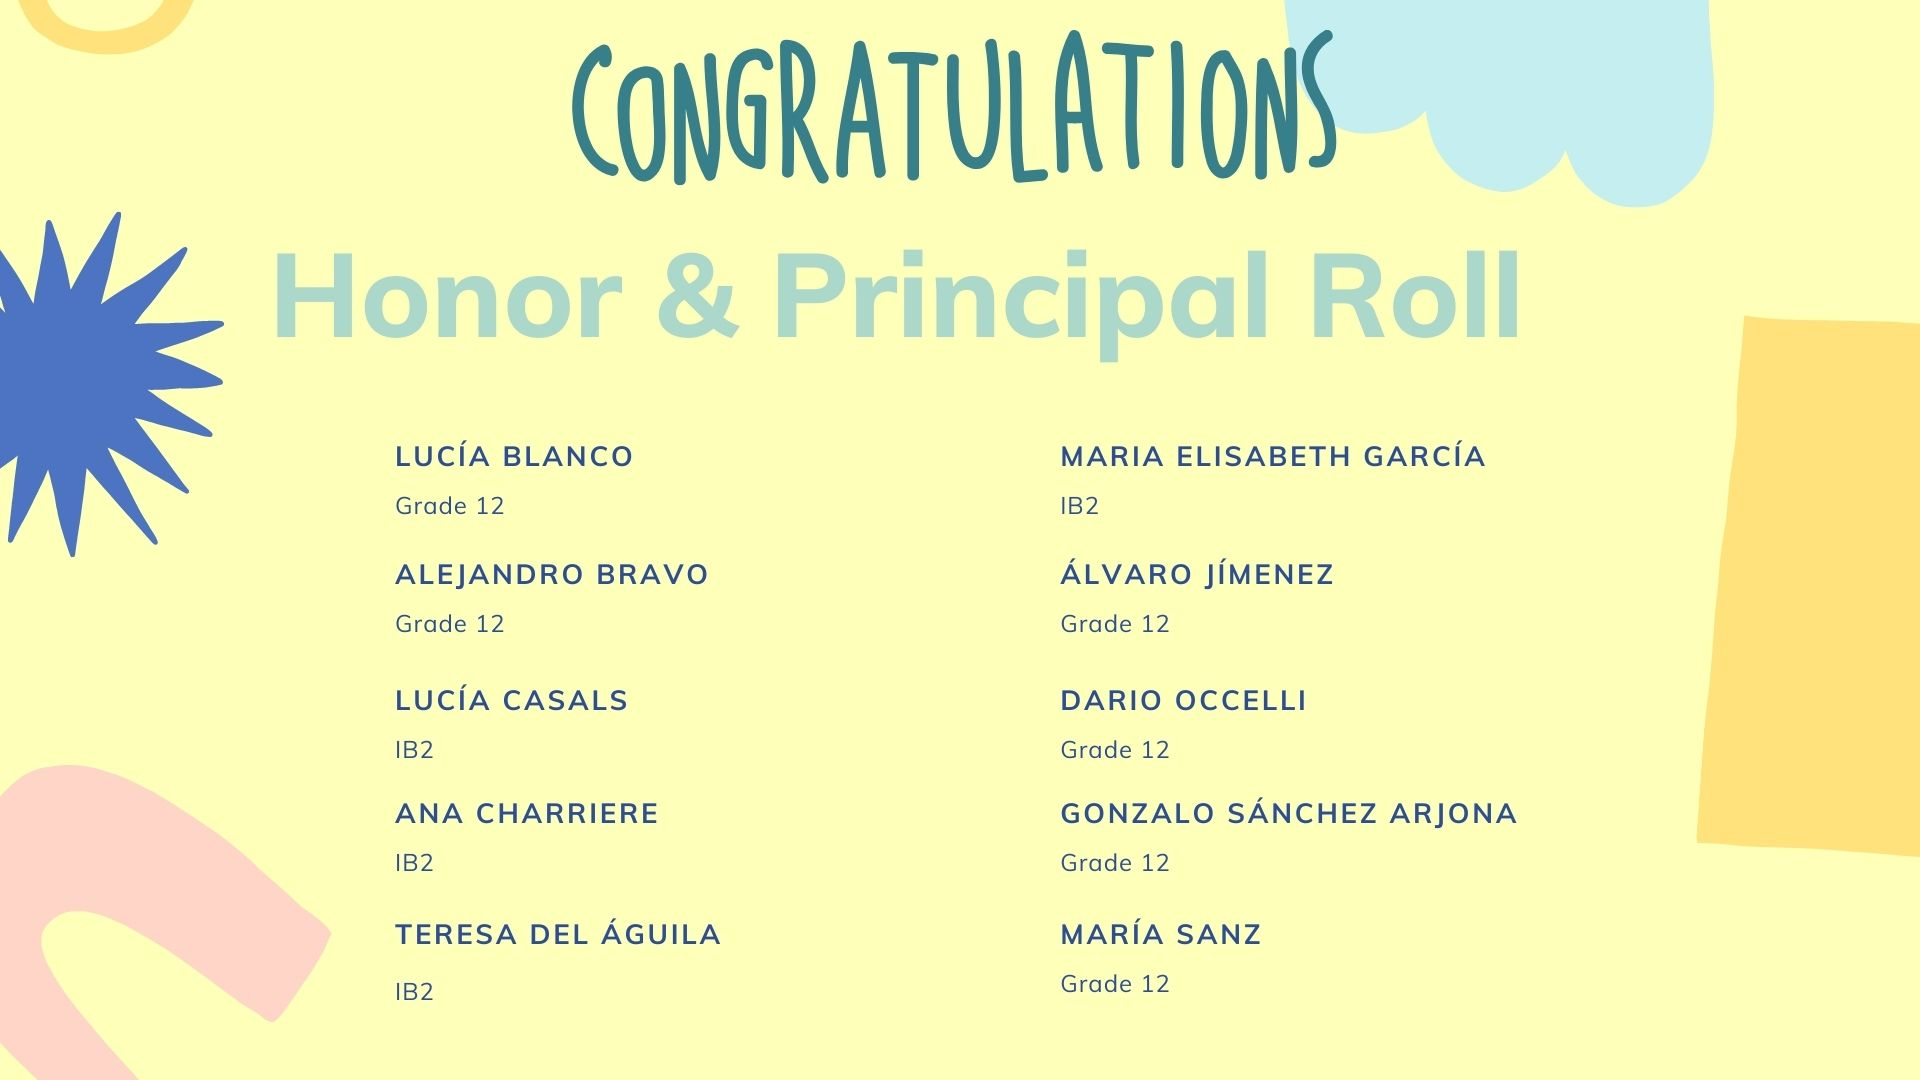 Congratulations to G12 students on the Honor & principal Roll list